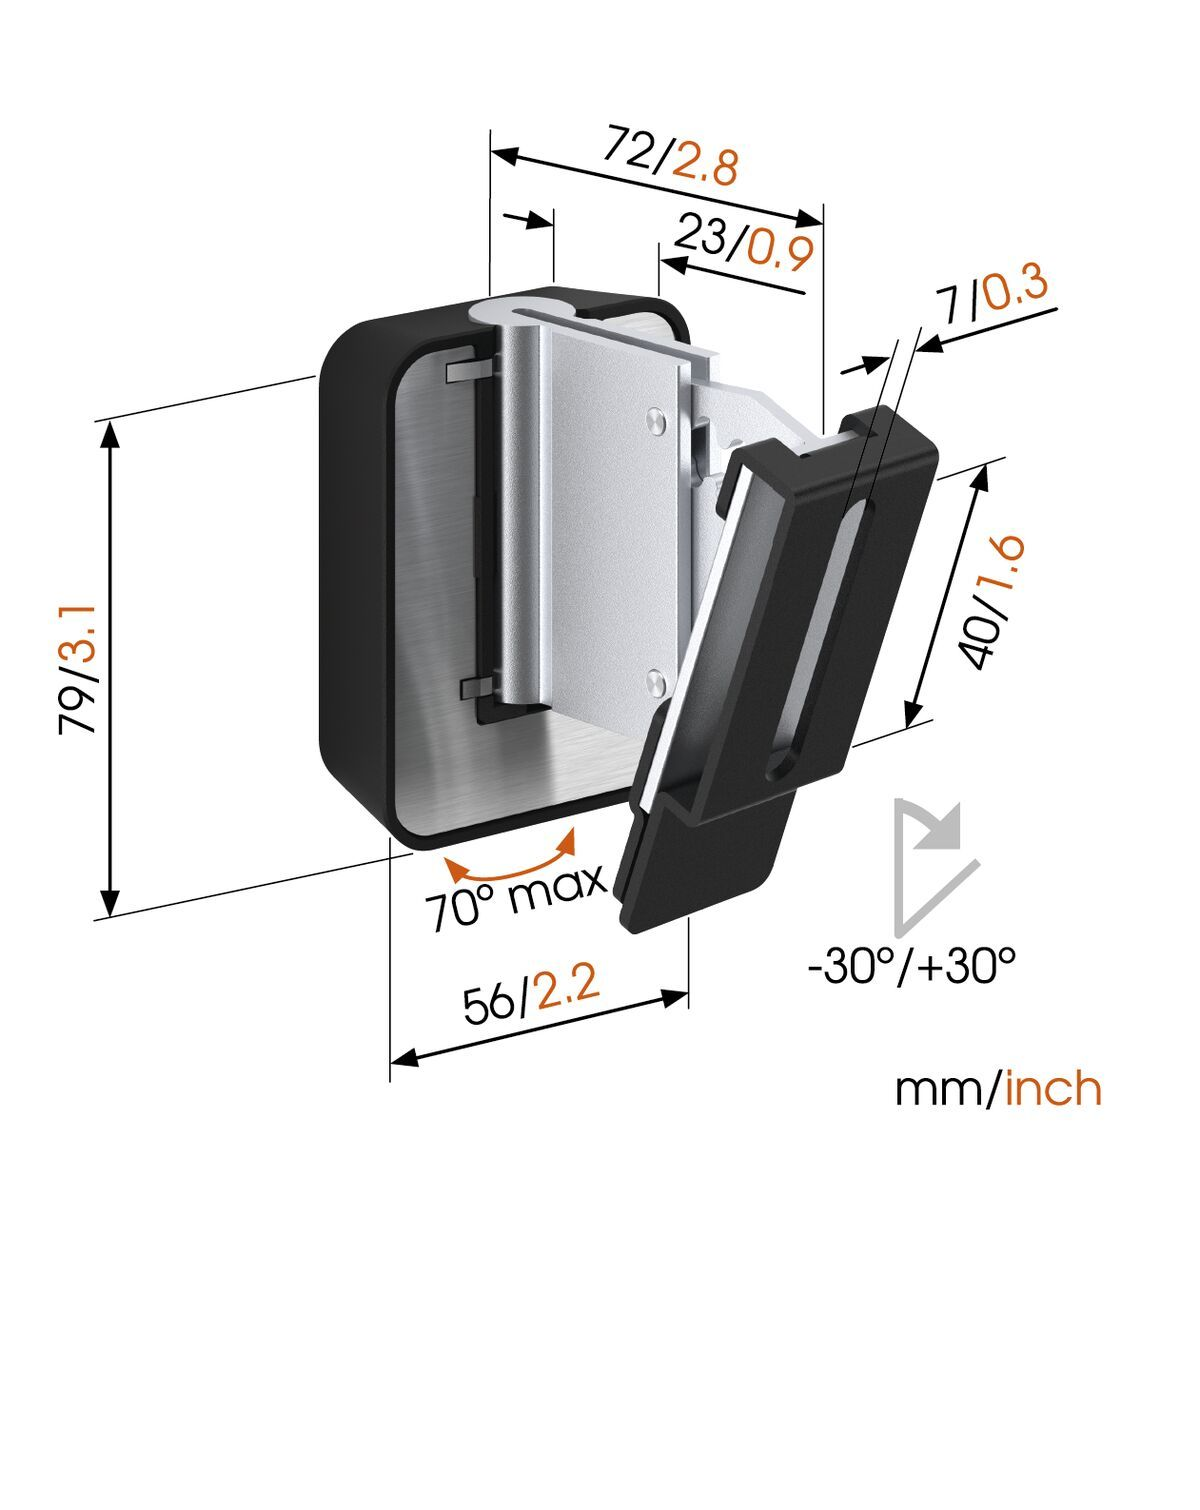 Vogel's SOUND 3200 Speaker Wall Mount (black) - Ideally suited for: Universal - Max. weight load: 5 kg - Dimensions